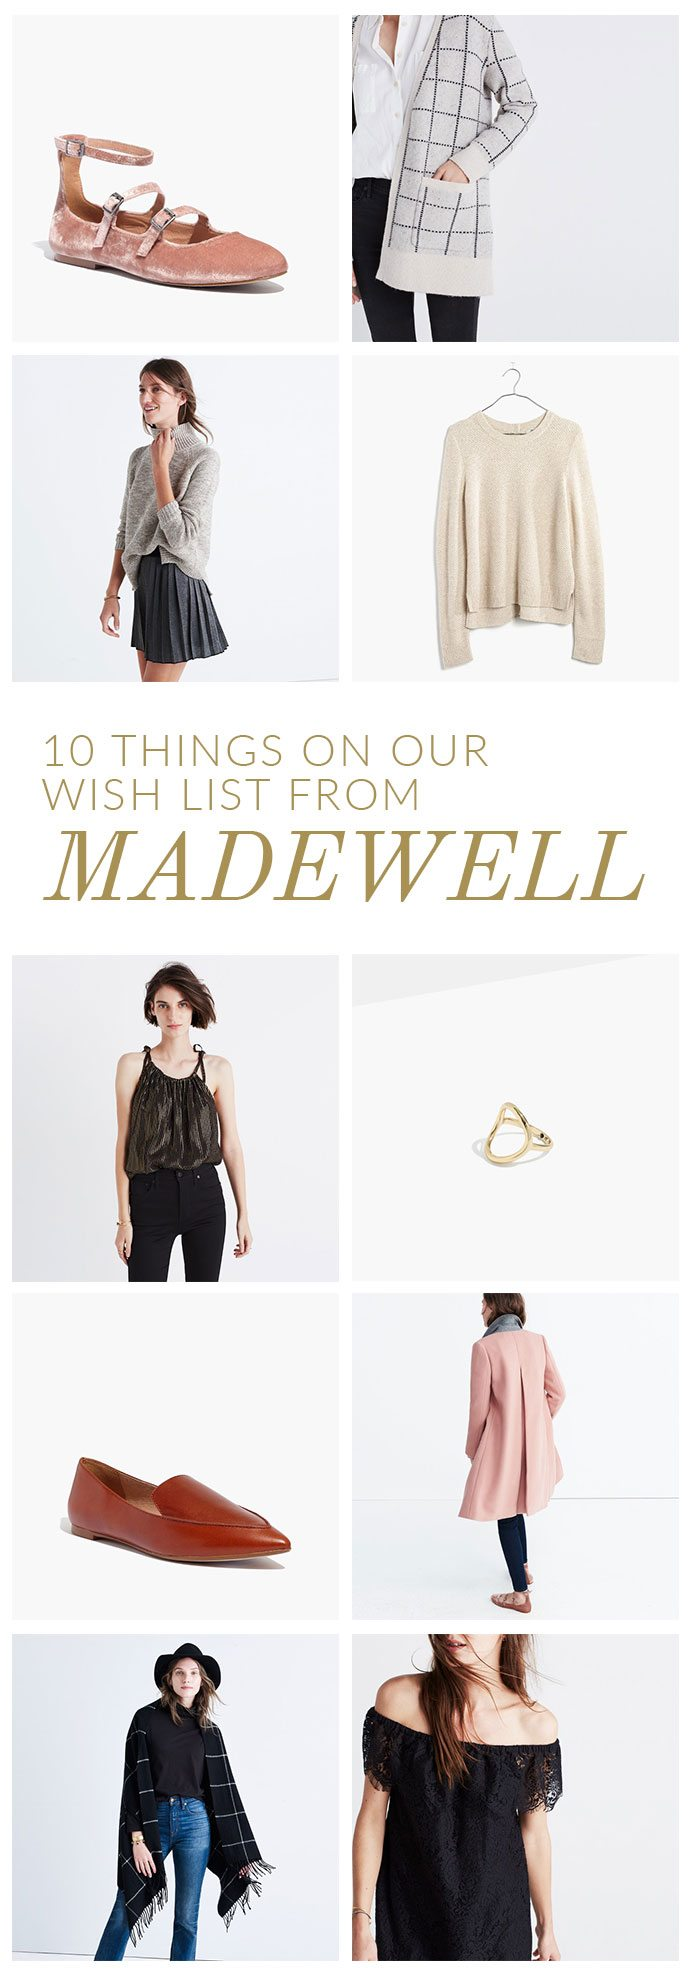 10 Things On Our Wish List From Madewell